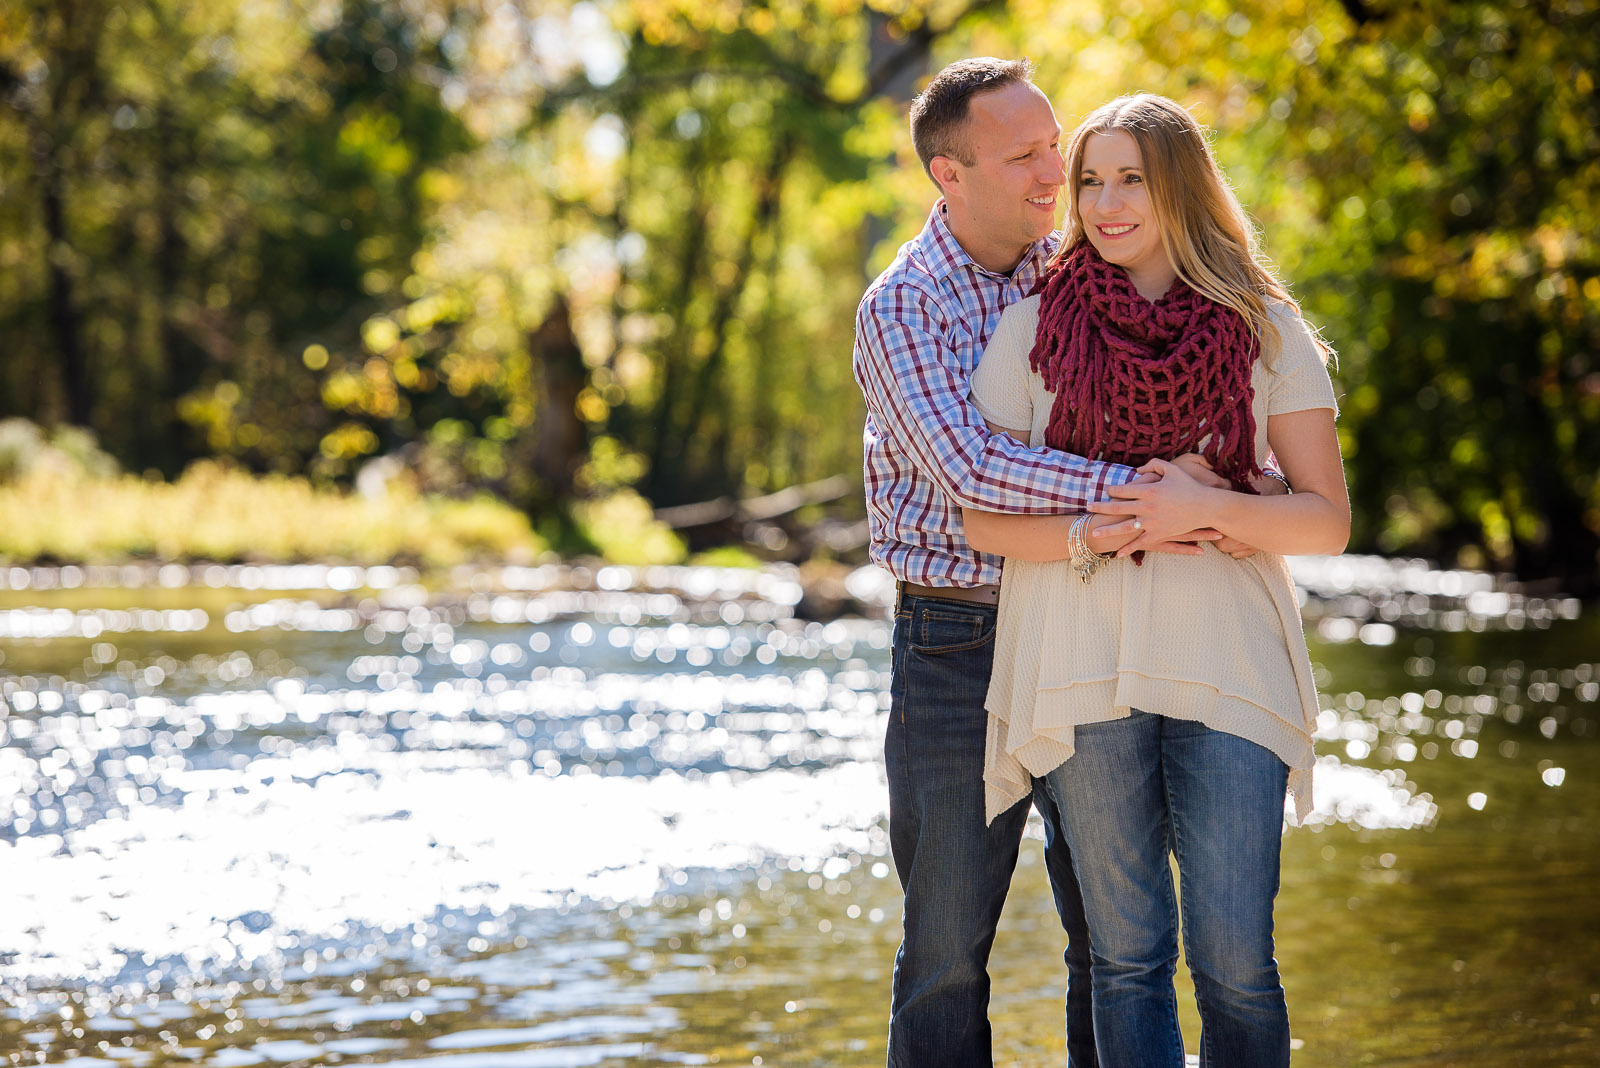 Eric_and_Christy_Photography_Blog_Megan_Nate_Engagement-12